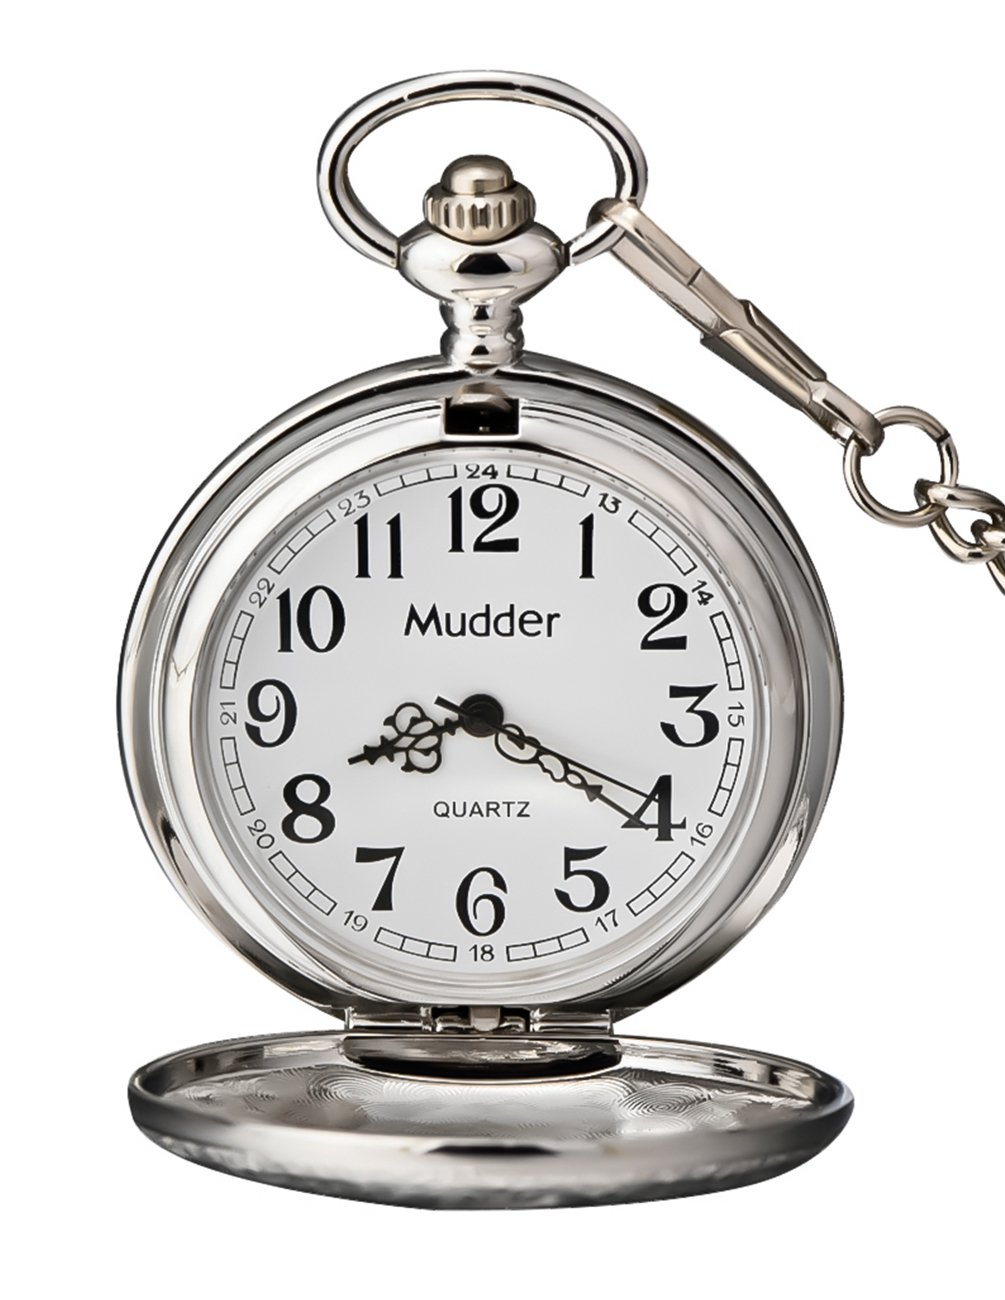 Mudder Vintage Silver Stainless Steel Quartz Pocket Watch Chain 2